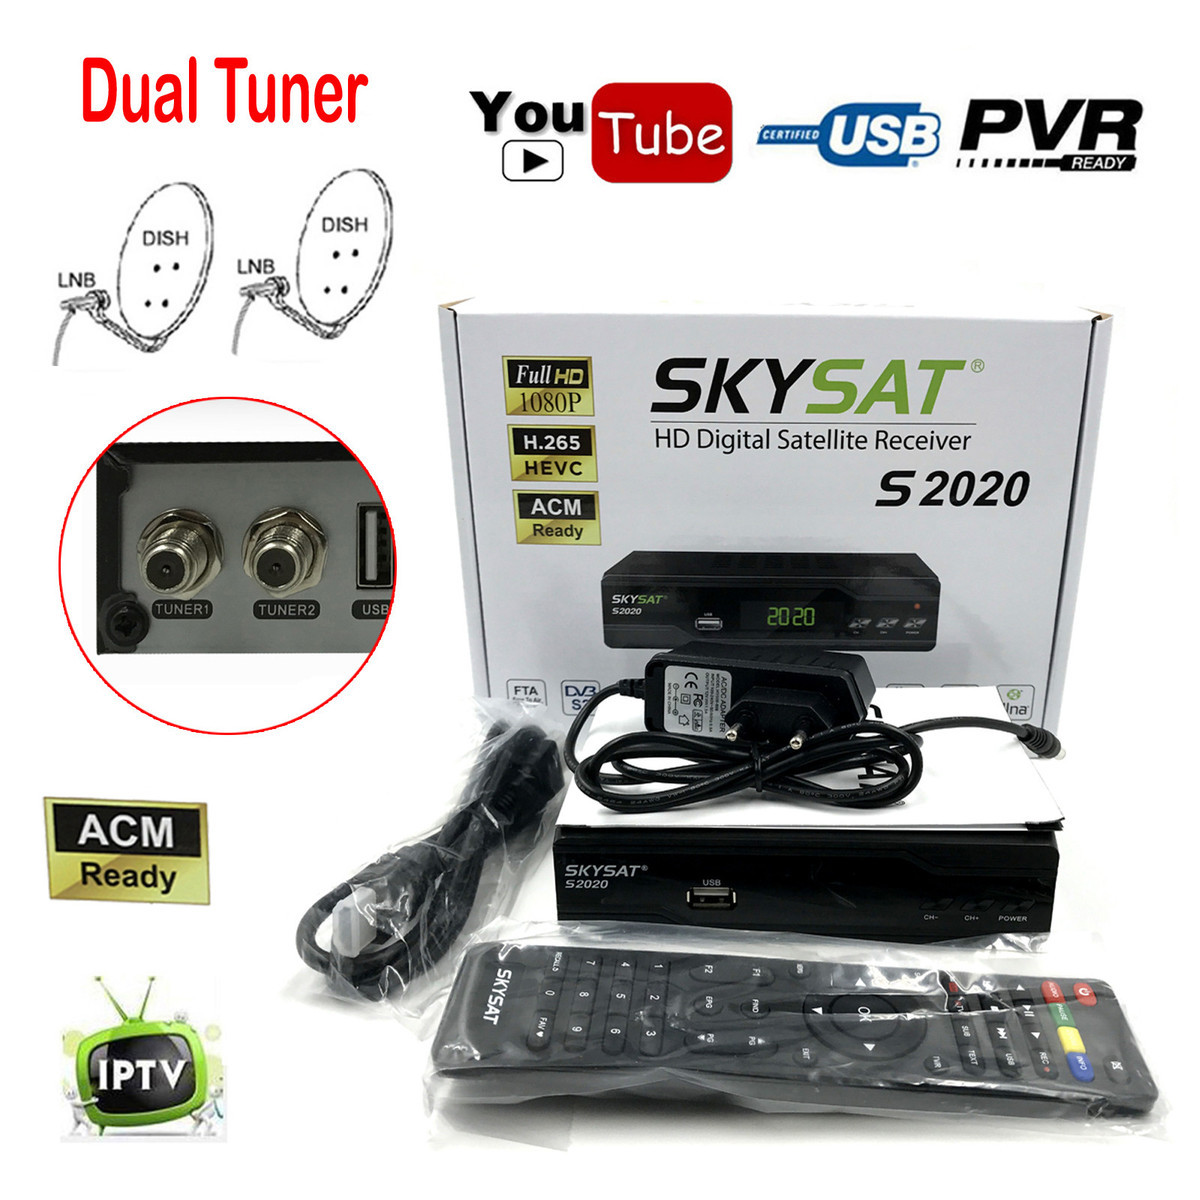 Skysat S2020 Dual Twin Dish Tuner H.265 AVC Digital Satellite Receiver ACM Support IKS SKS ACM/VCM/CCM IPTV VOD with LAN Wifi